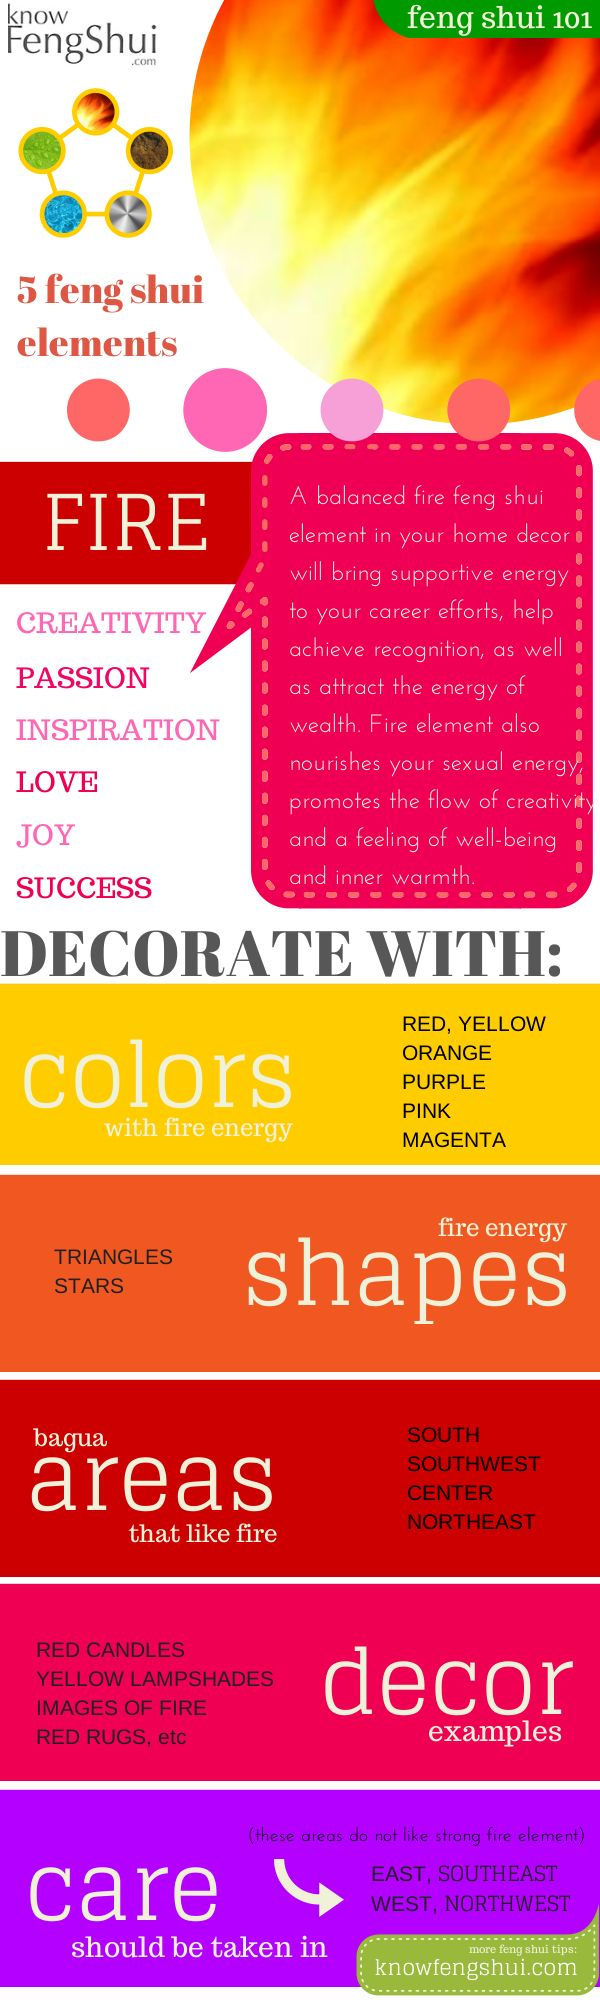 Feng Shui Decorating With Fire Element